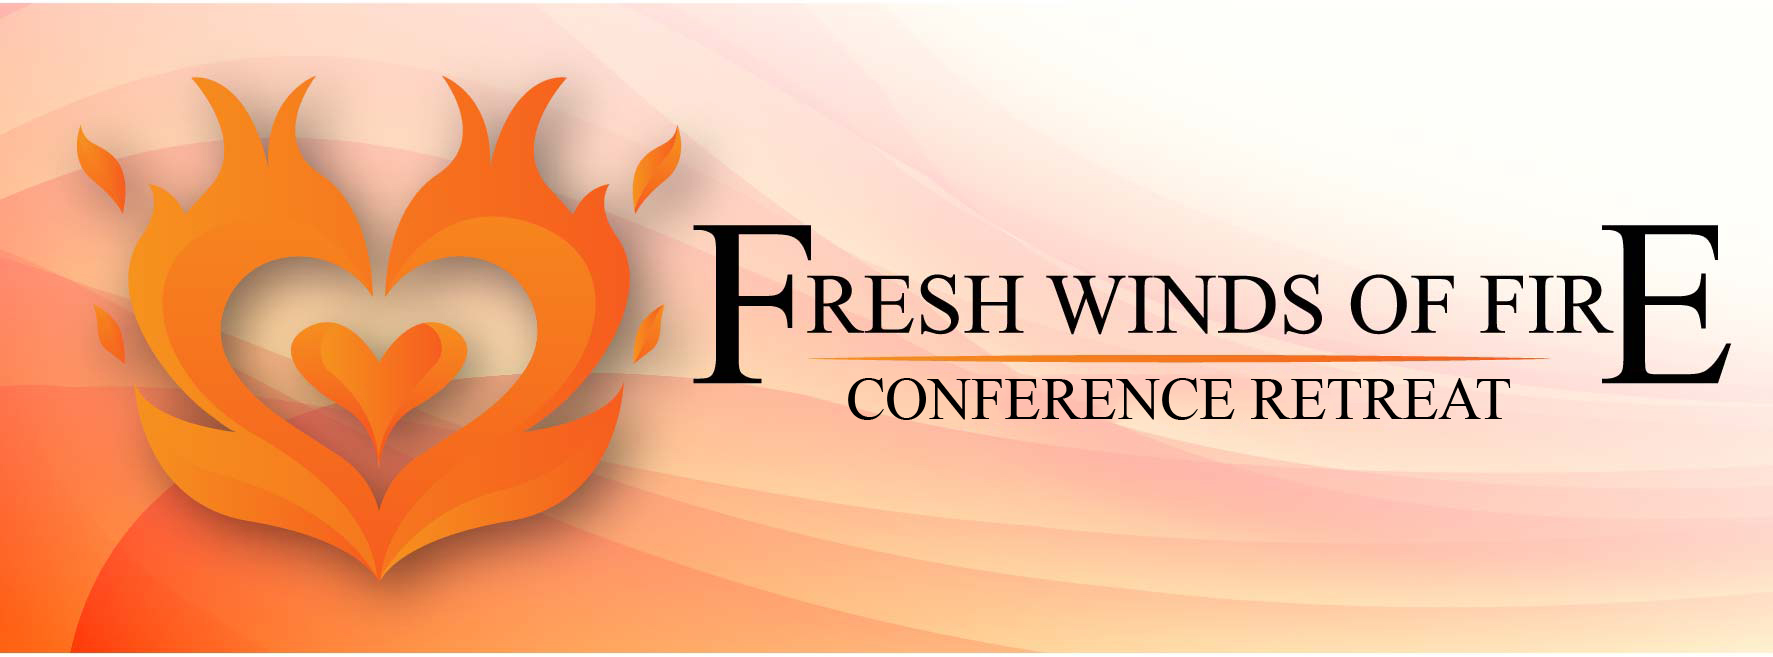 Fresh Winds of Fire Conference Retreat Banner